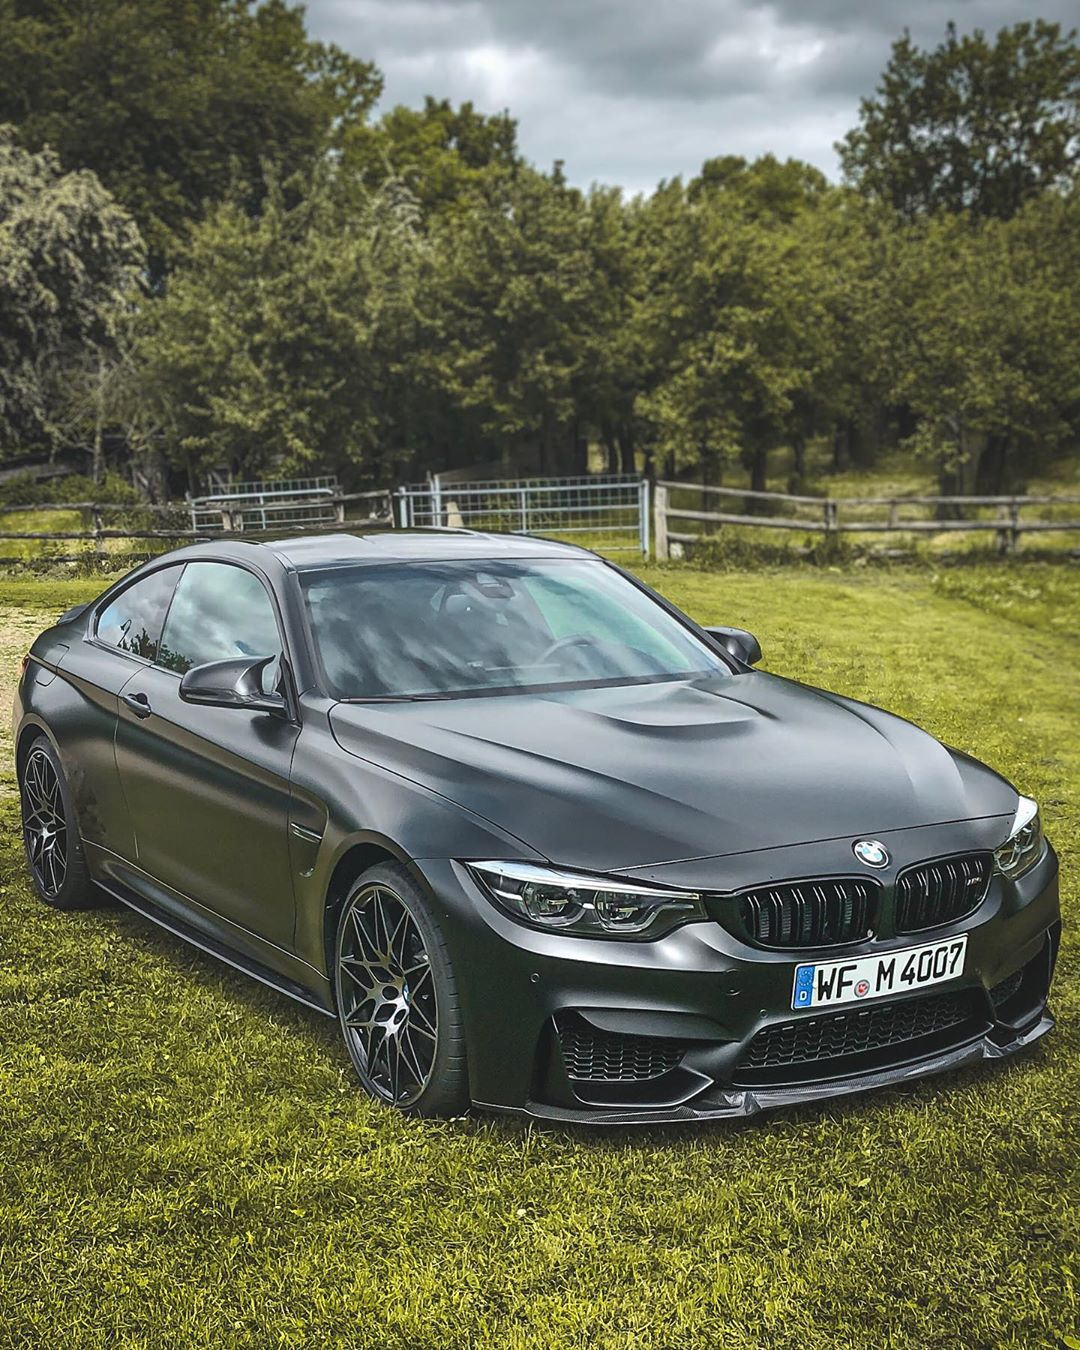 Long weekend ahead…and the next week is going to be incredible…one car collection day and a Roadtrip to Austria following #bmwmrepost #mperformance #m4competition #m4competitionpack #m4cs #m4 #bmwm4 #bmwm4competitionpackage #frozenblack #frozenblackm4 #automanntv #automannsgarage #mtown